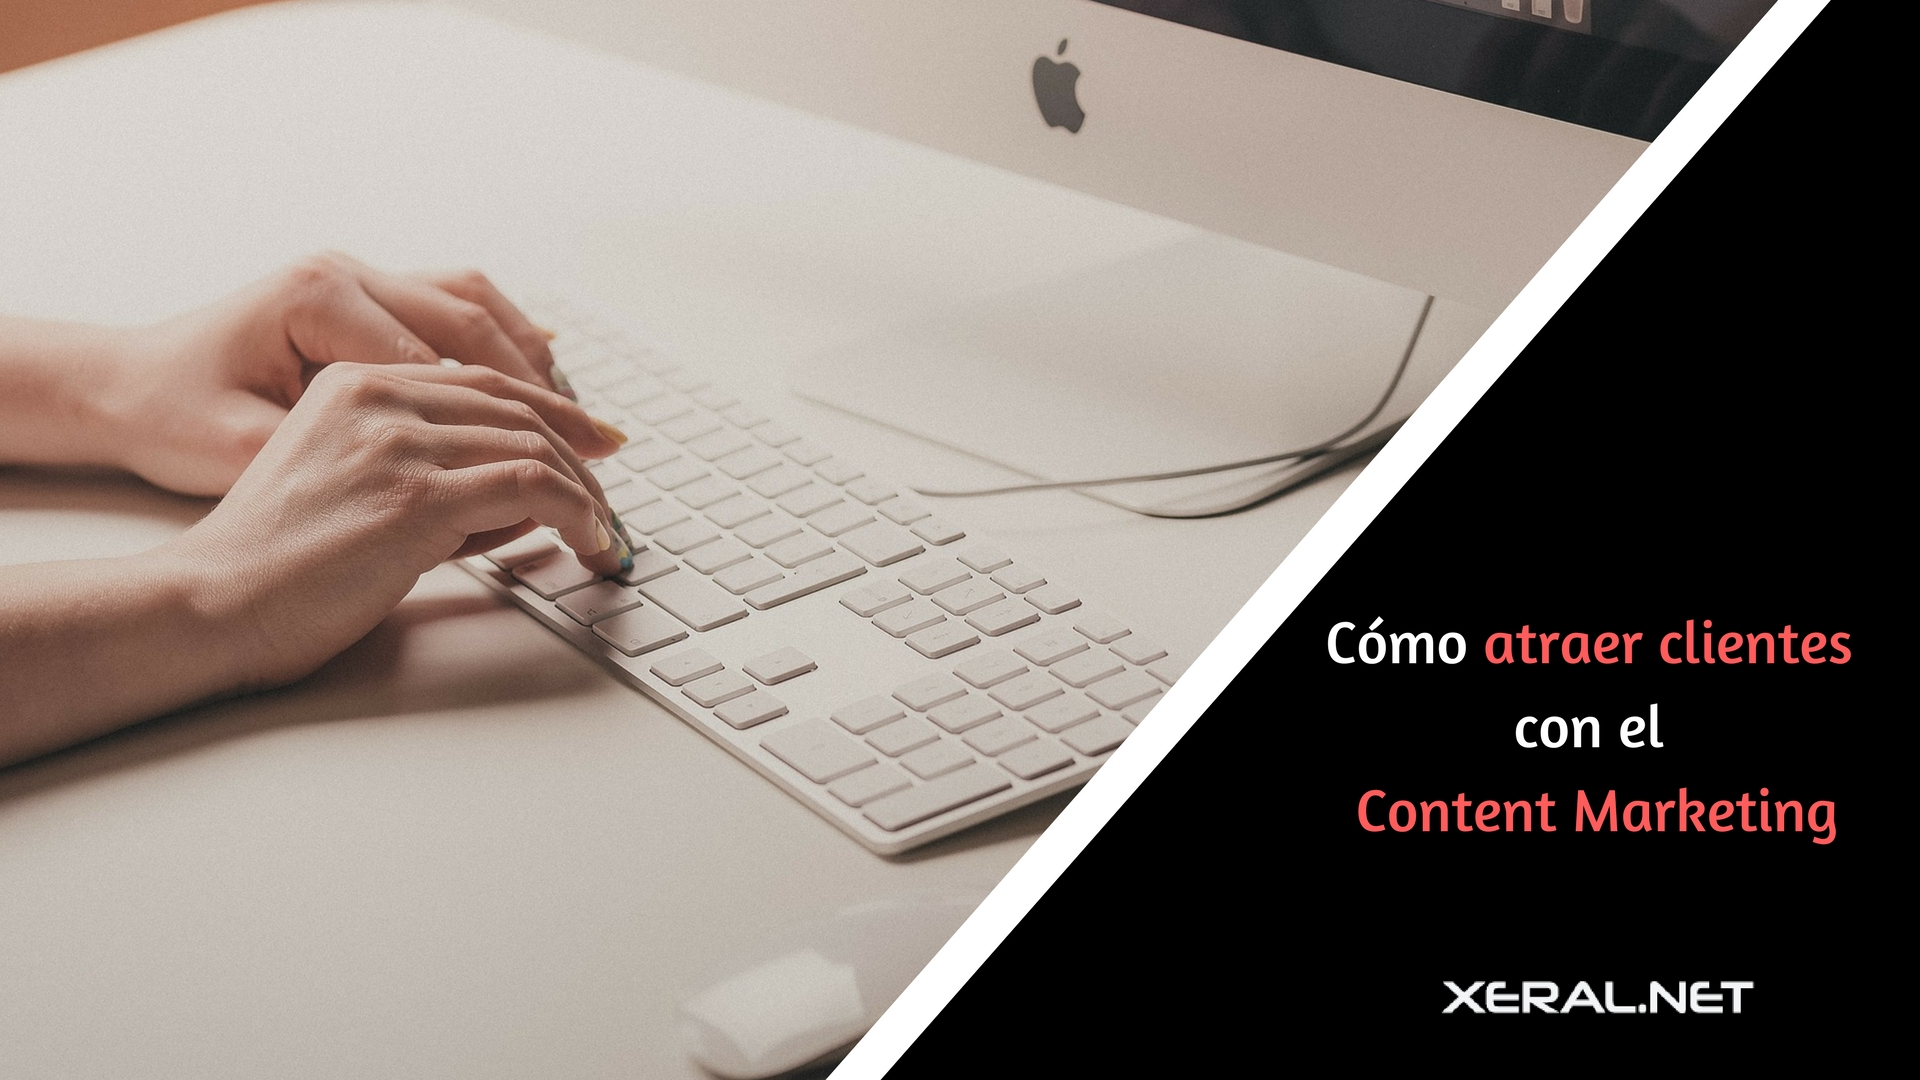 Como atraer clientes con el Content Marketing